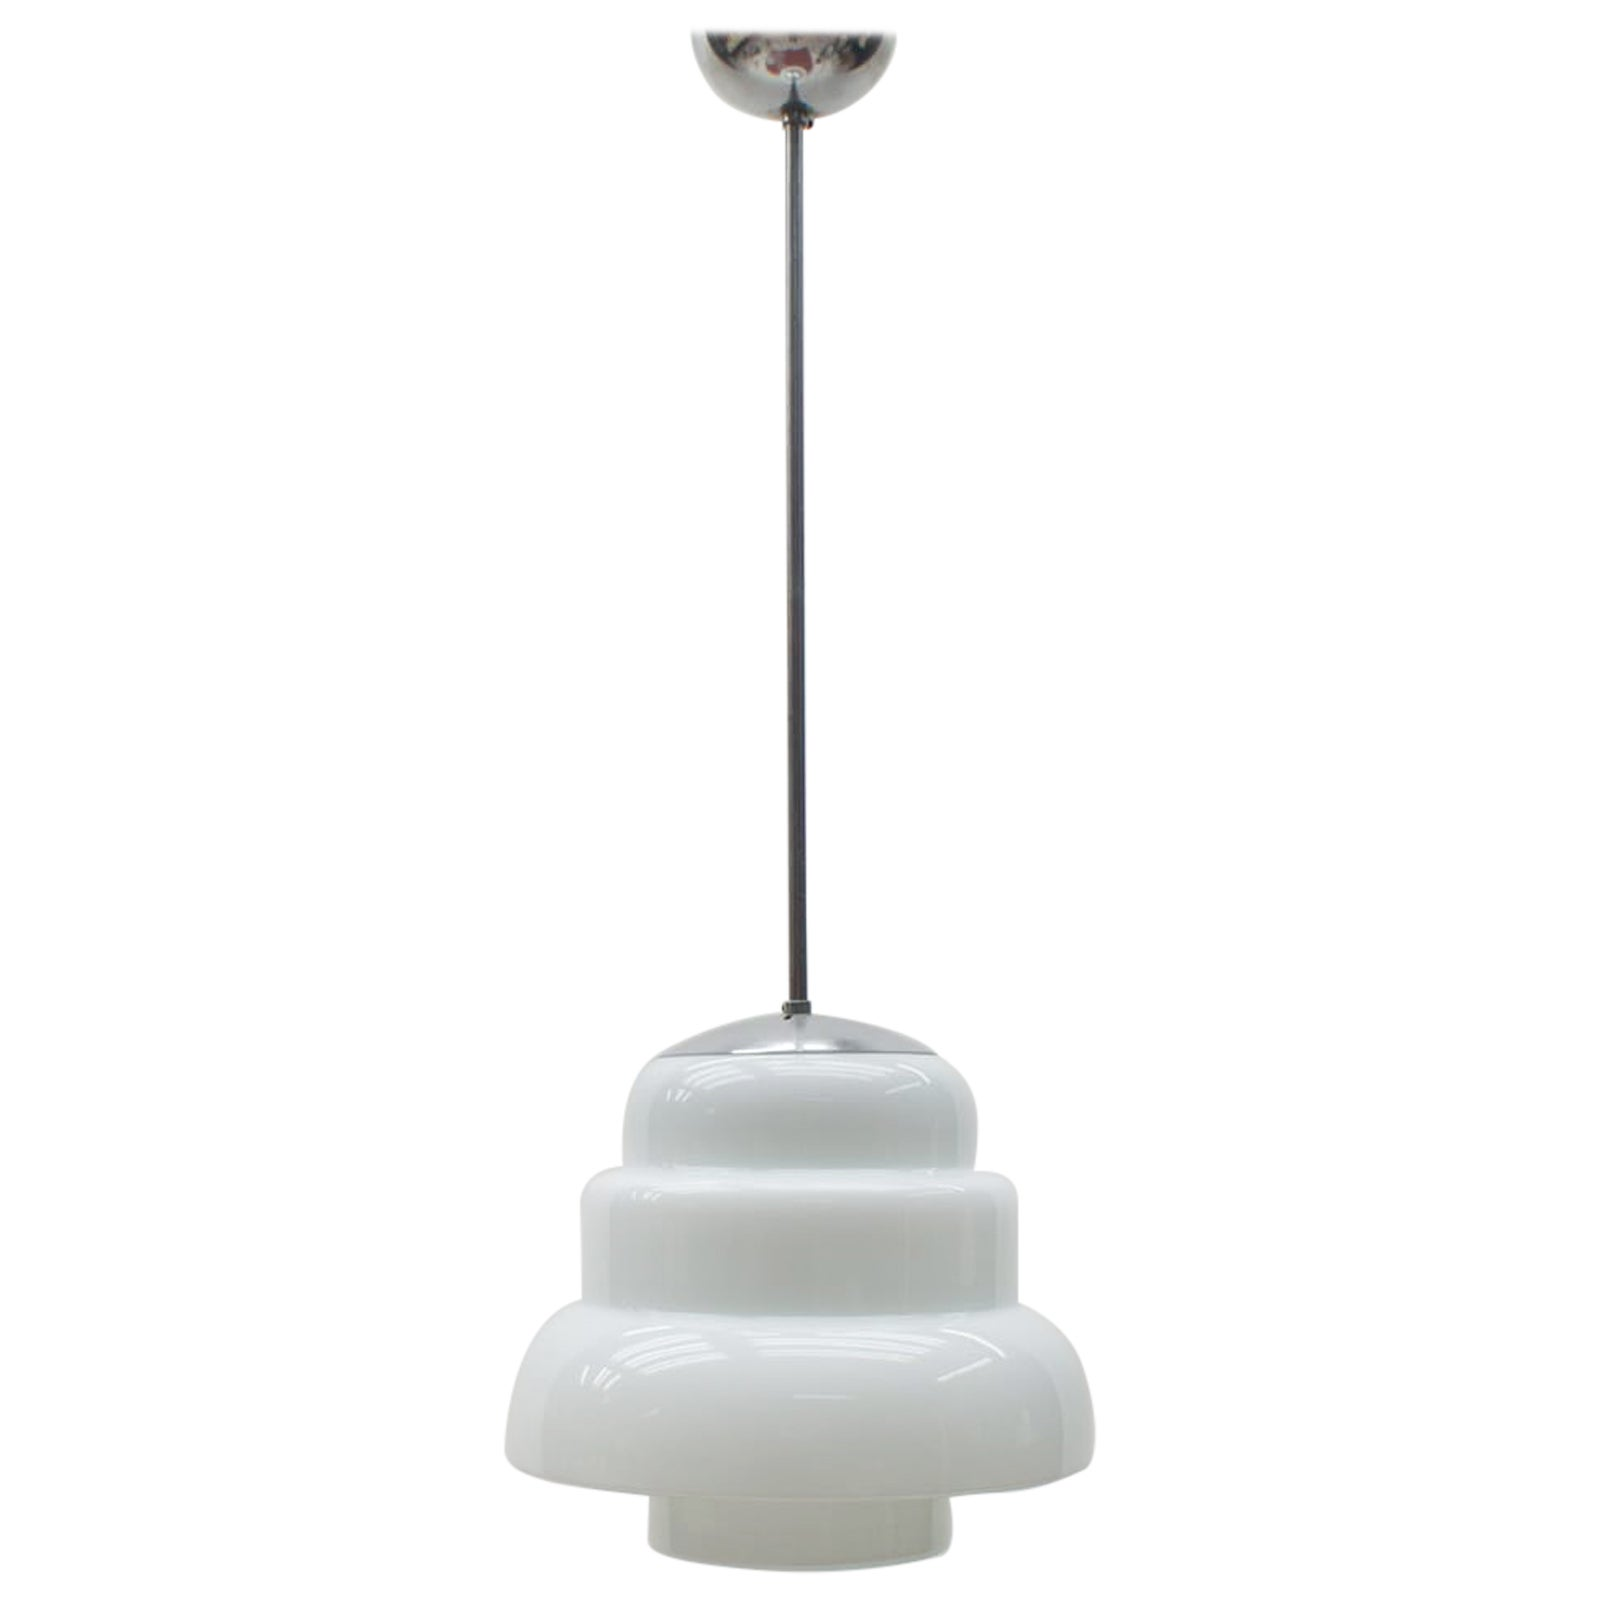 Extremely Rare Art Deco Stepped Milk Glass Lamp, 1930s, Germany